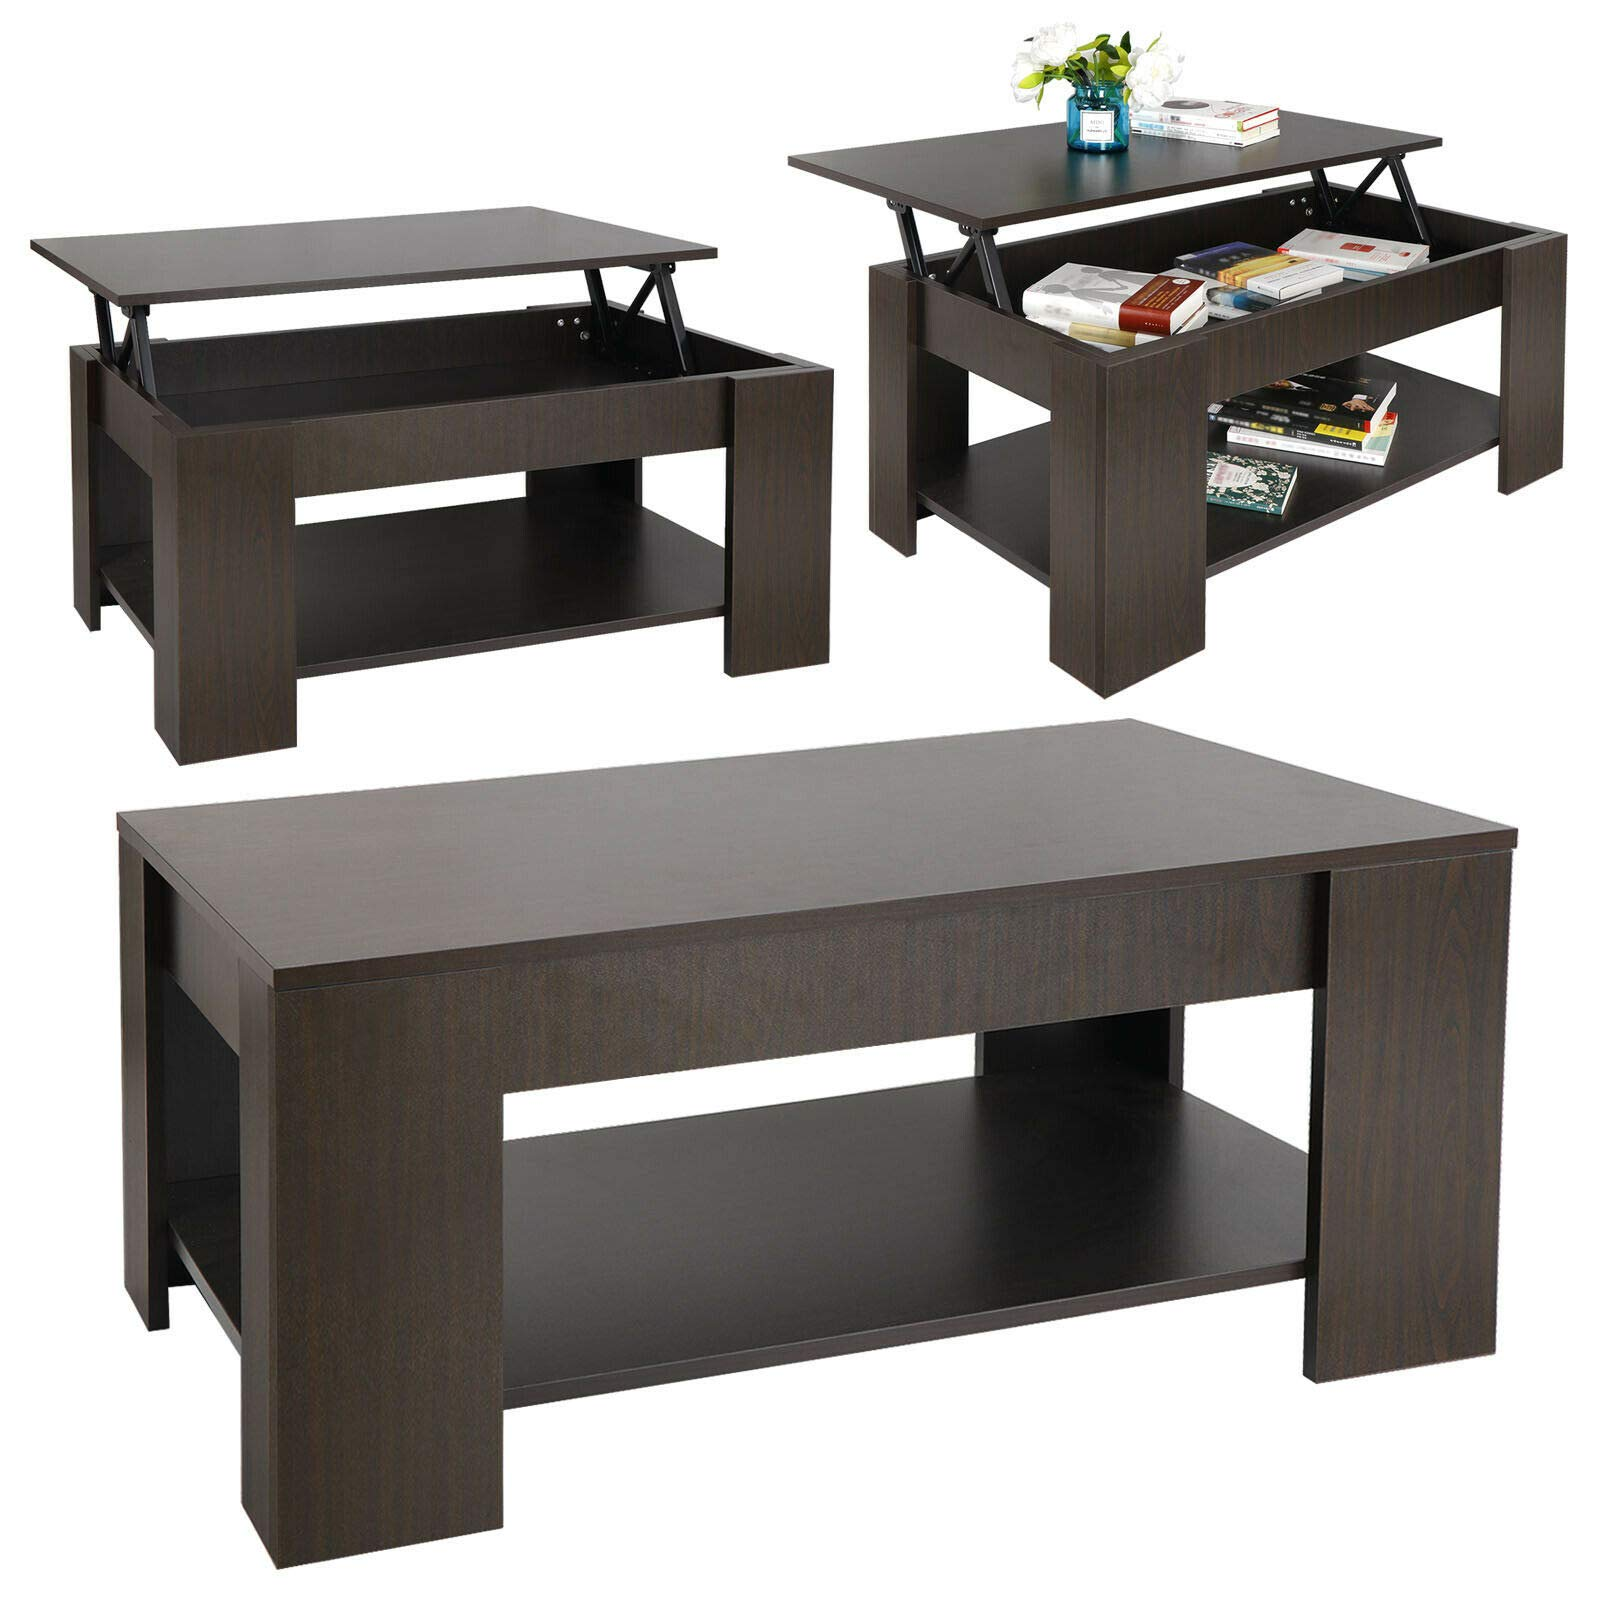 SD Life Premium Quality Coffee Table Lift Top with Hidden Compartment Storage Shelf Modern Home Furniture by SD Life